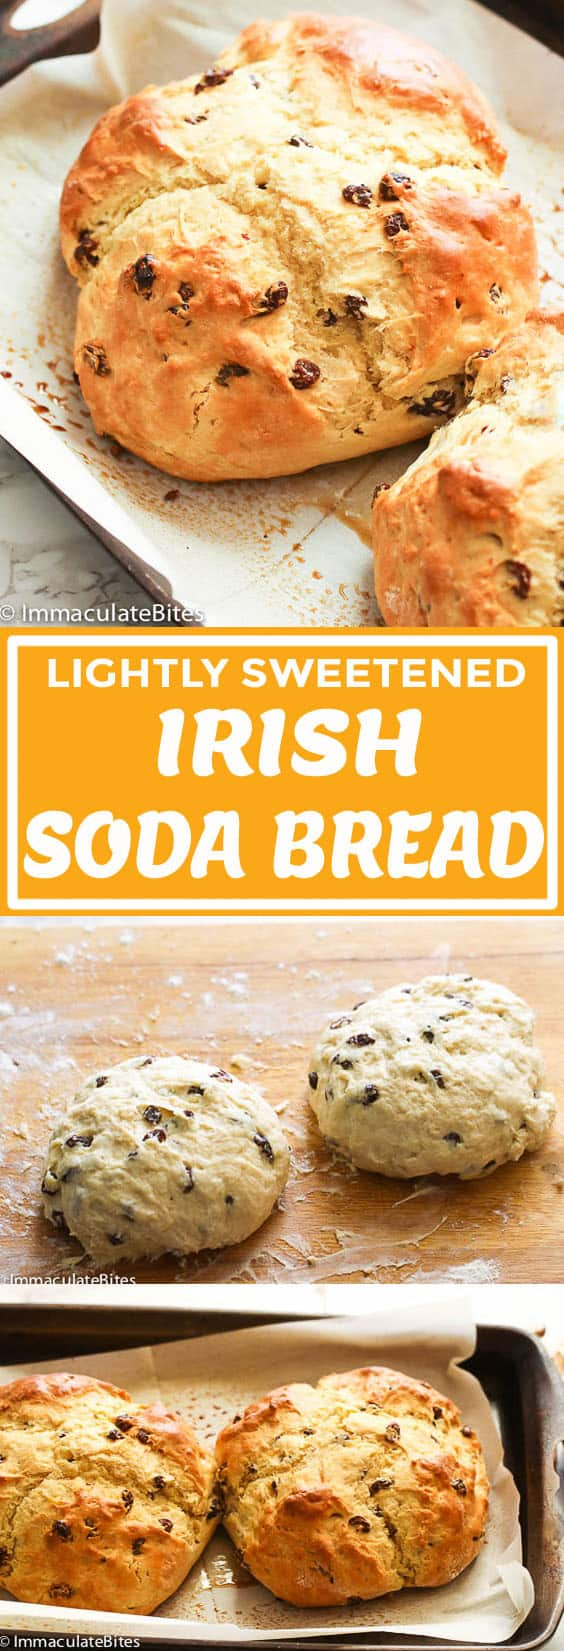 Irish Soda Bread.3